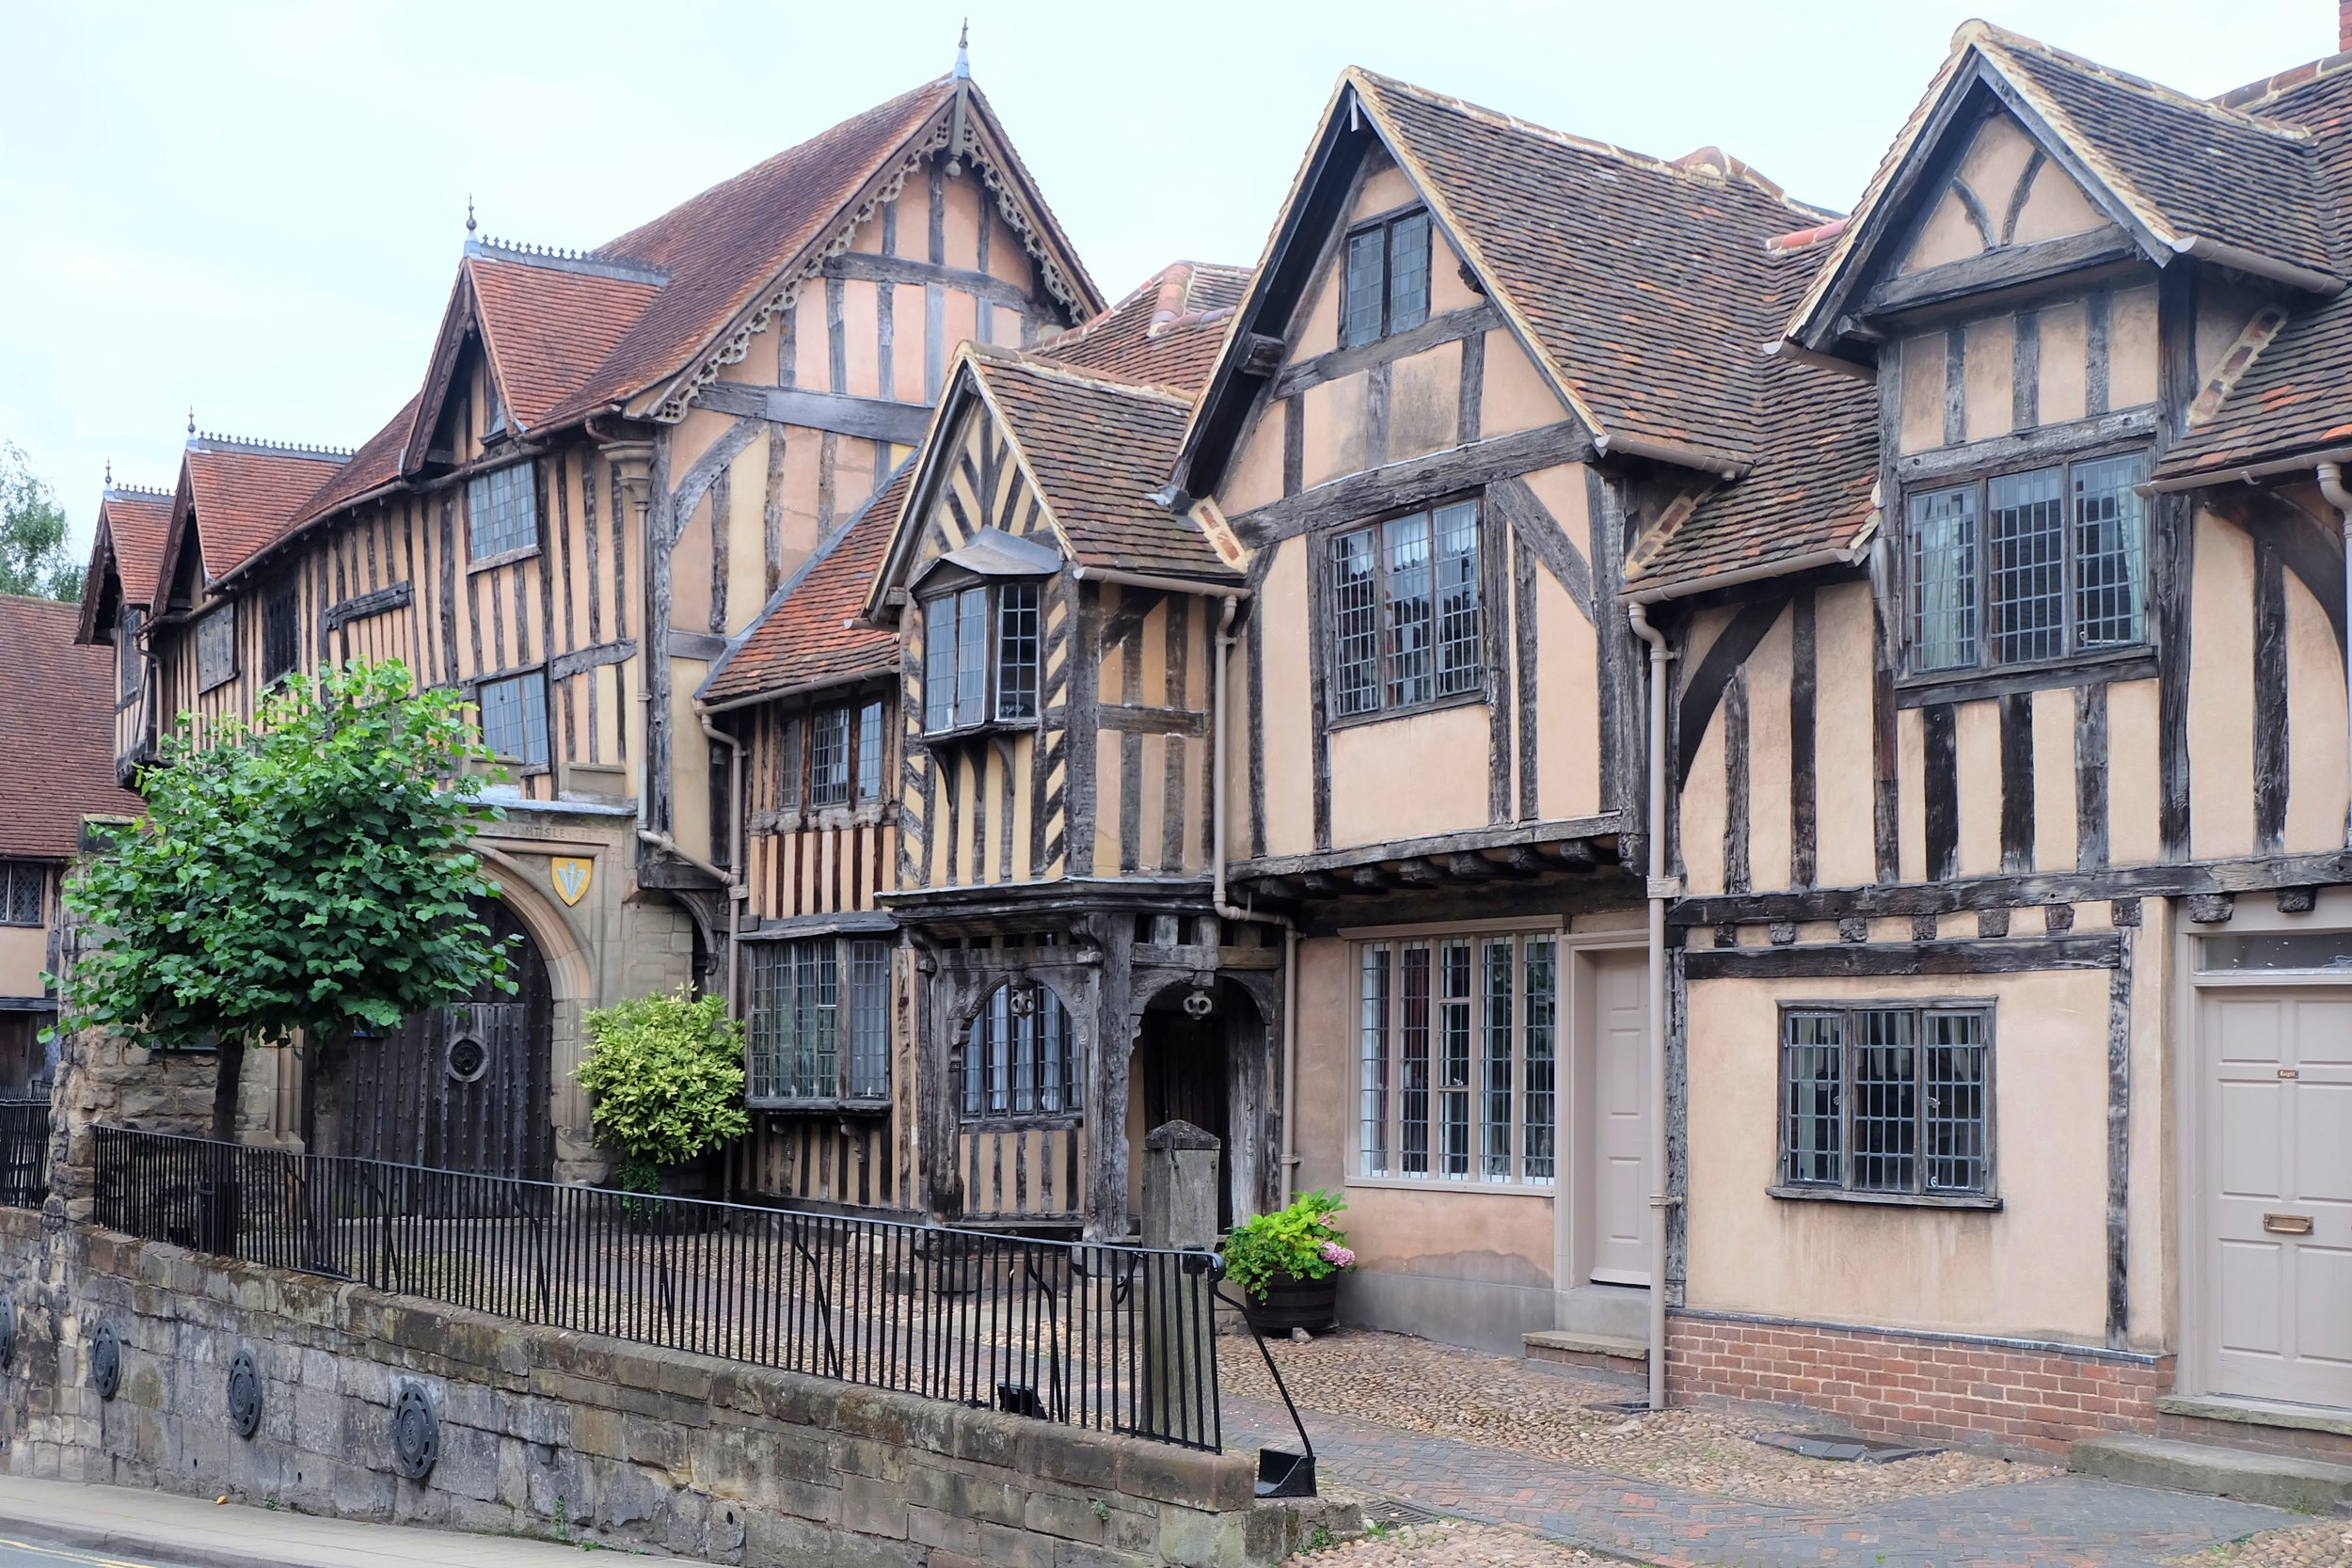 Lord Leycester Hospital